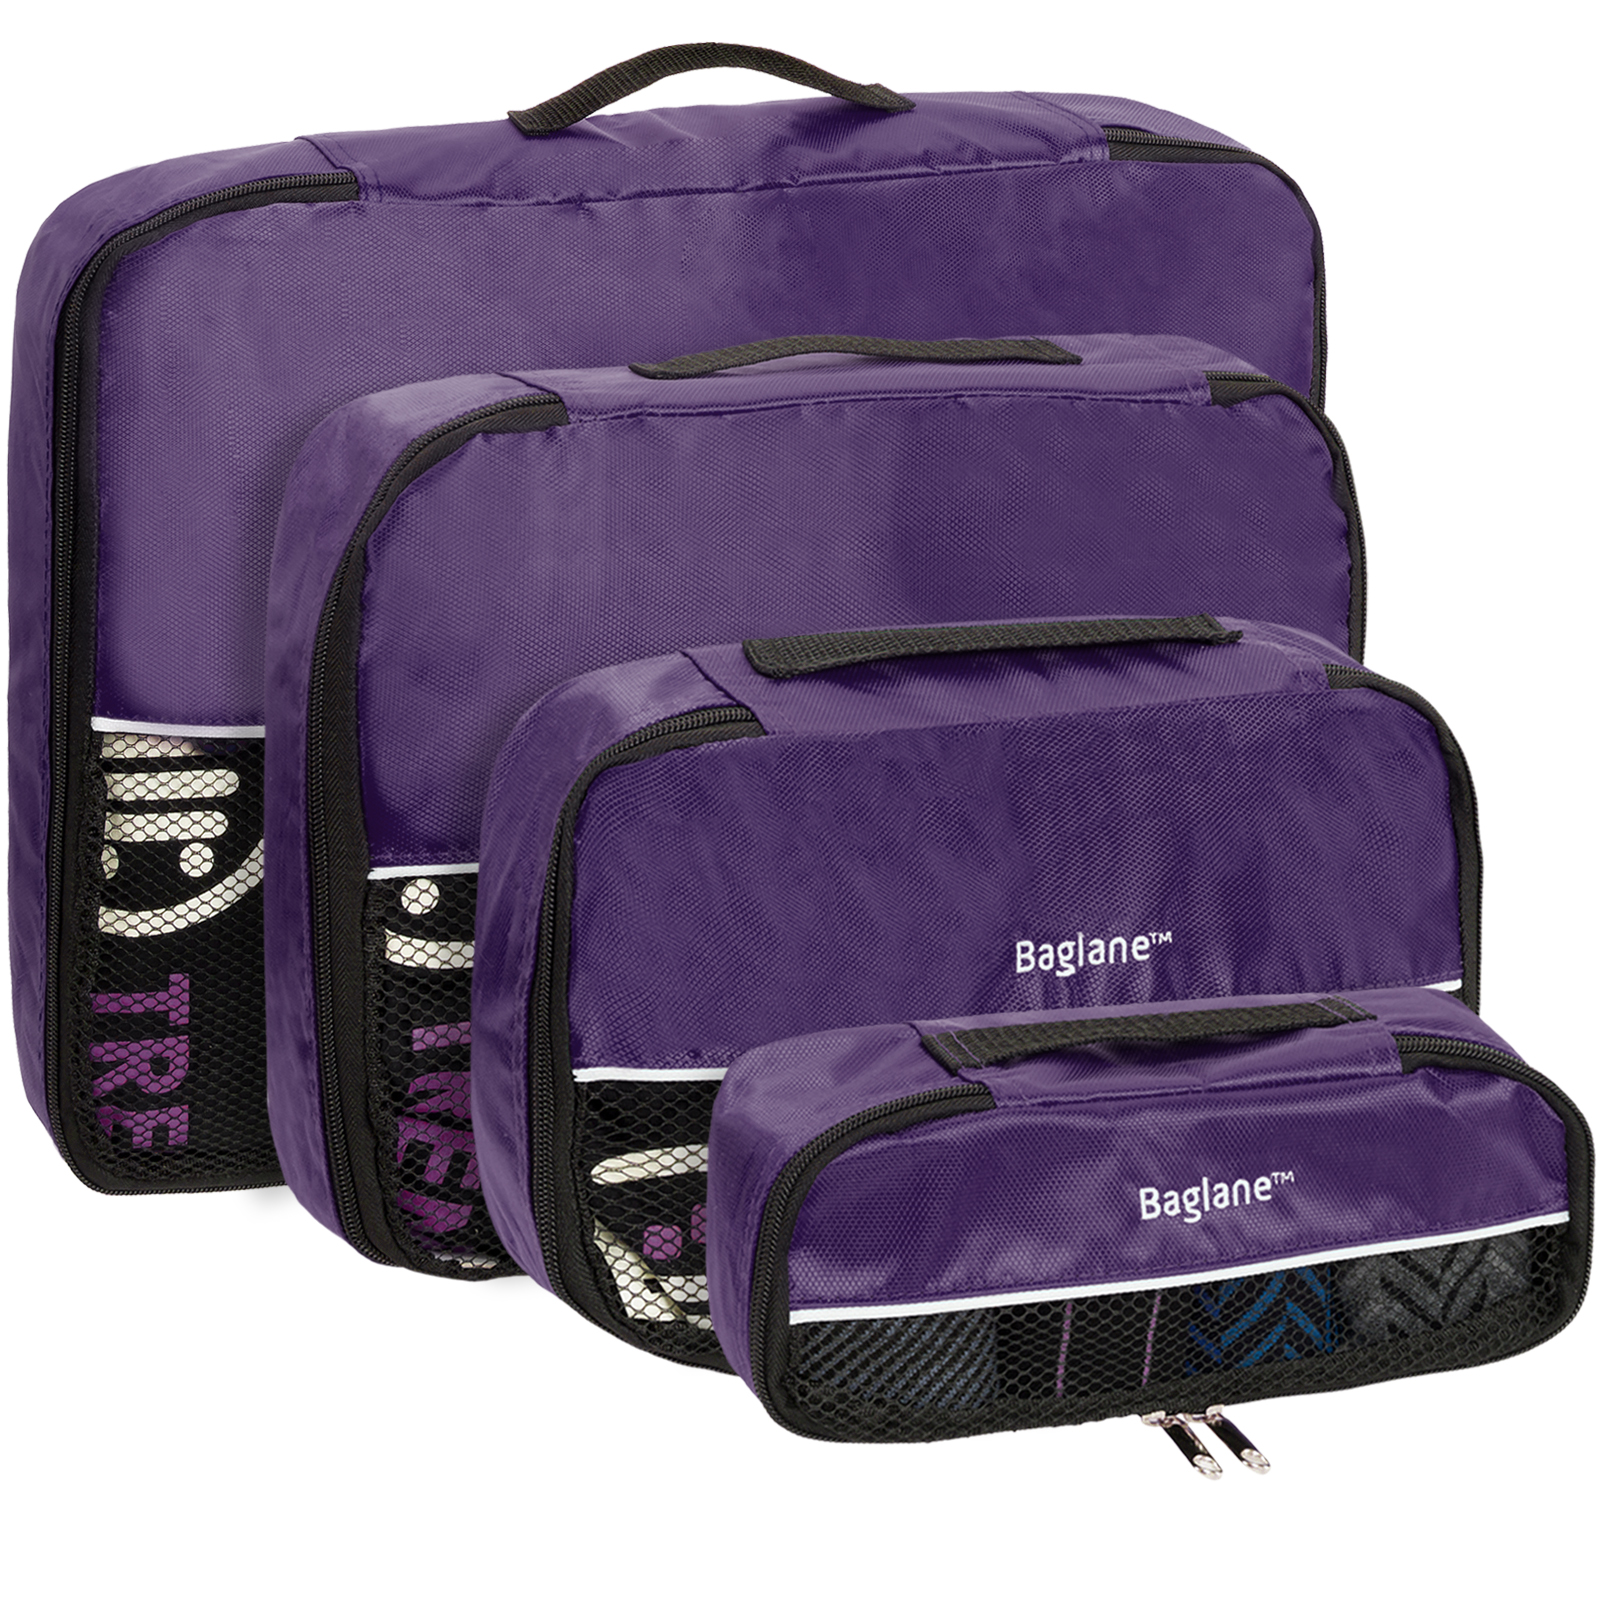 Baglane Purple TechLife Luggage Travel Packing Cube Bags - 4pc Set (XS-L)